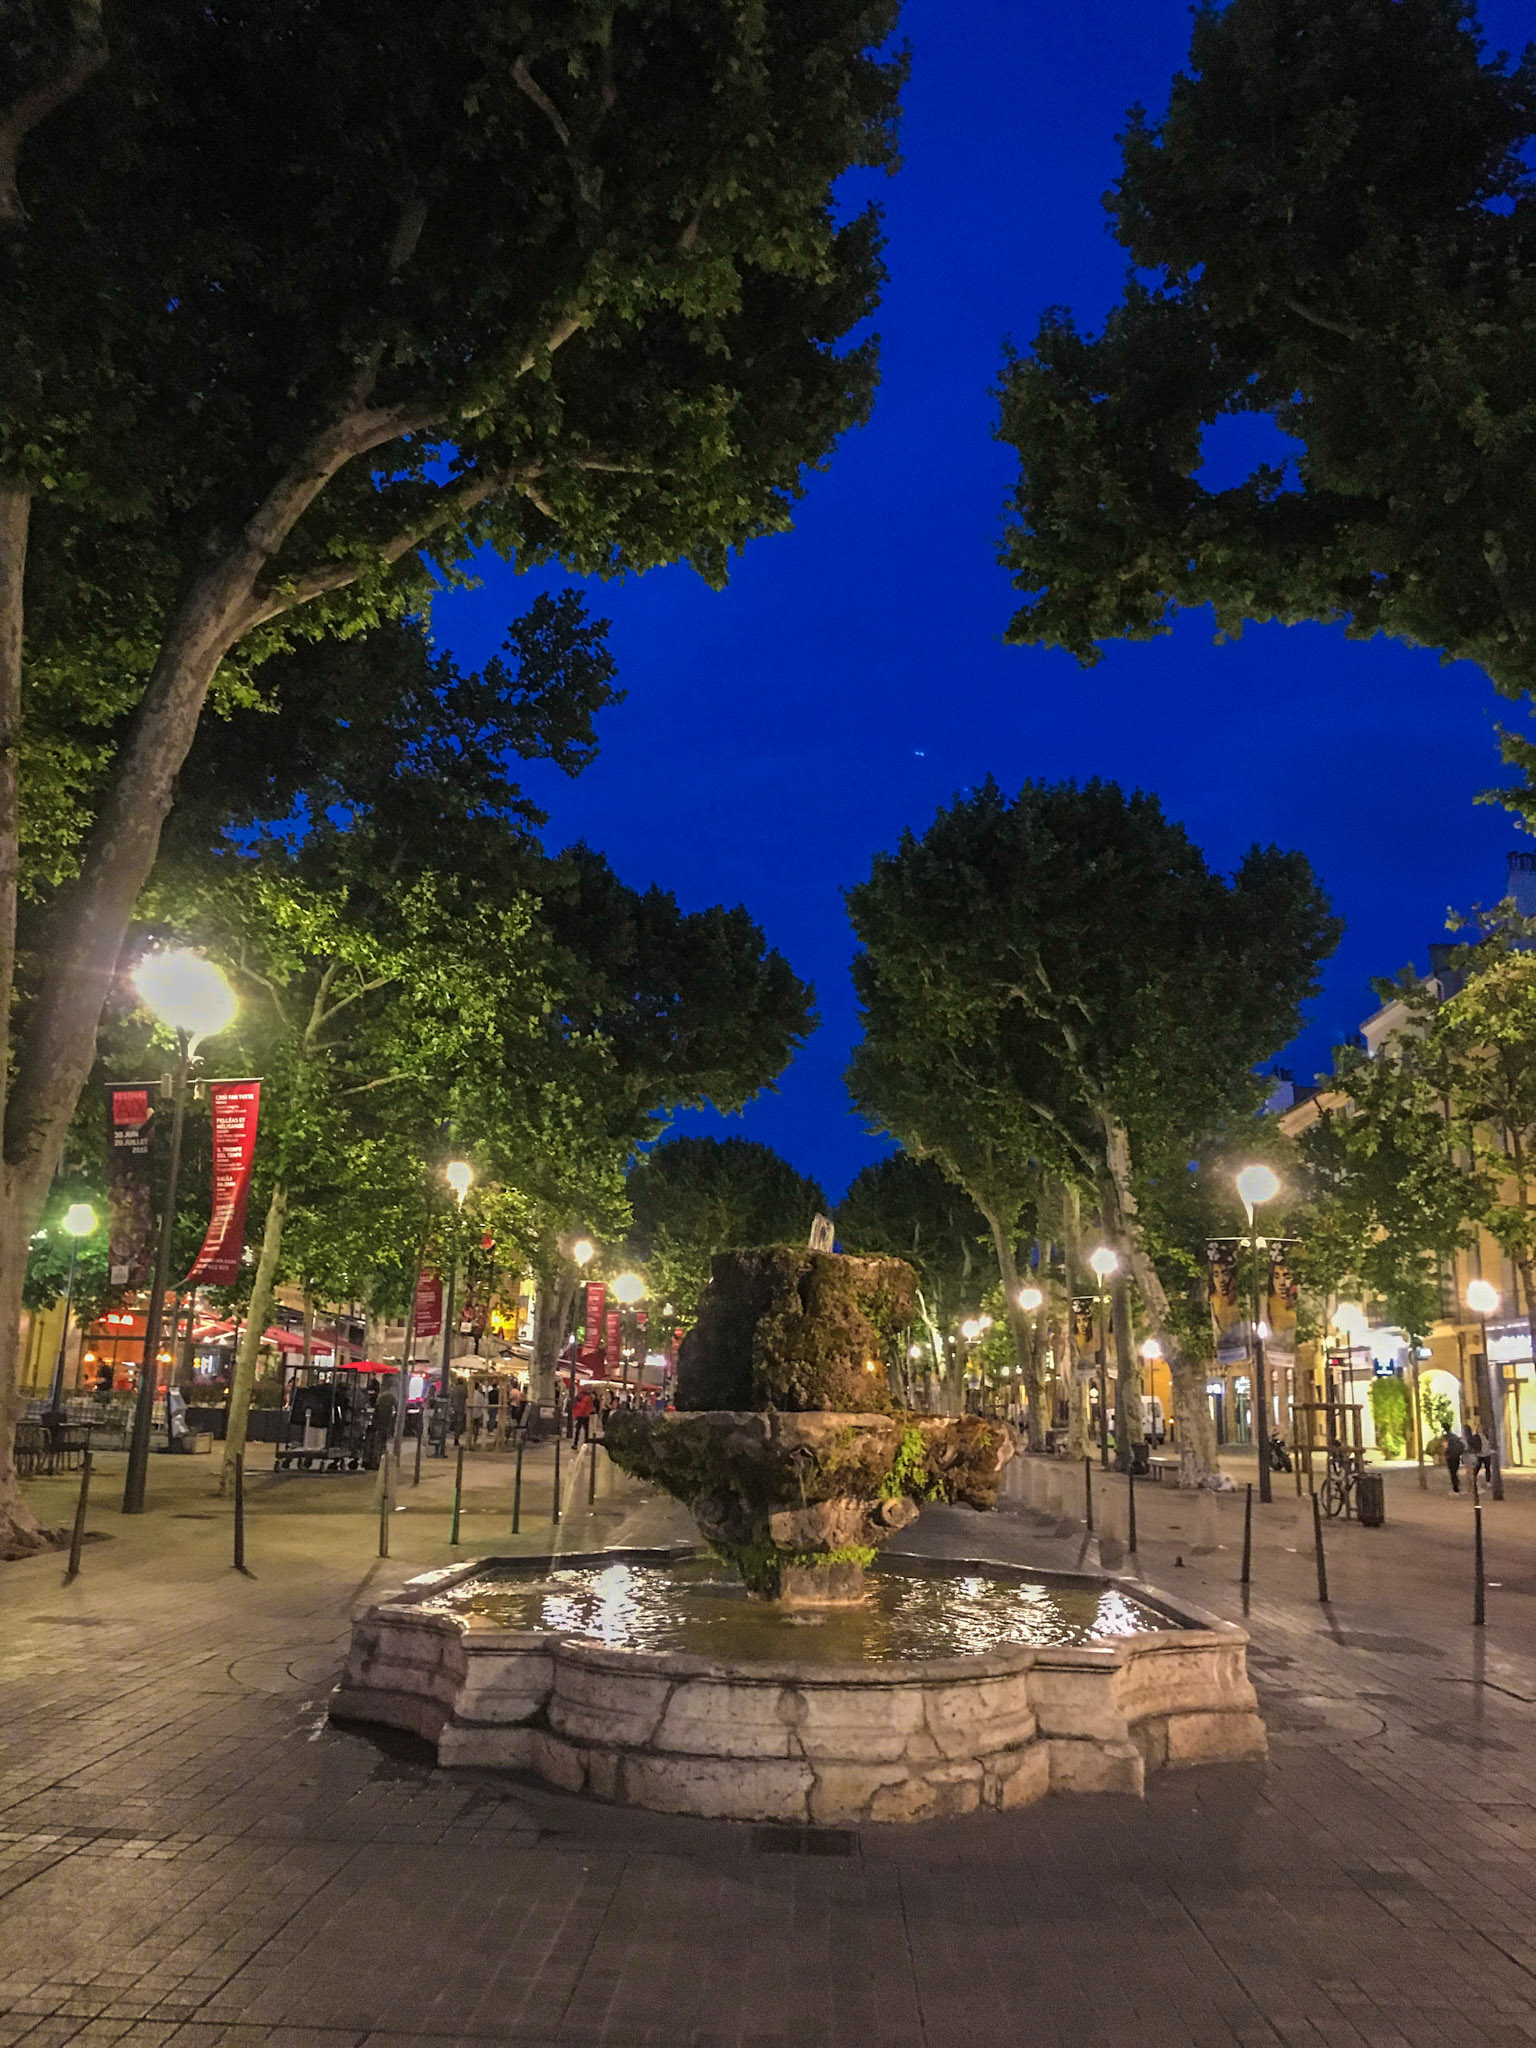 The Mossy Fountain on Cours Mirabeau in Aix-en-Provence, France | #mfrancisdesigntravels